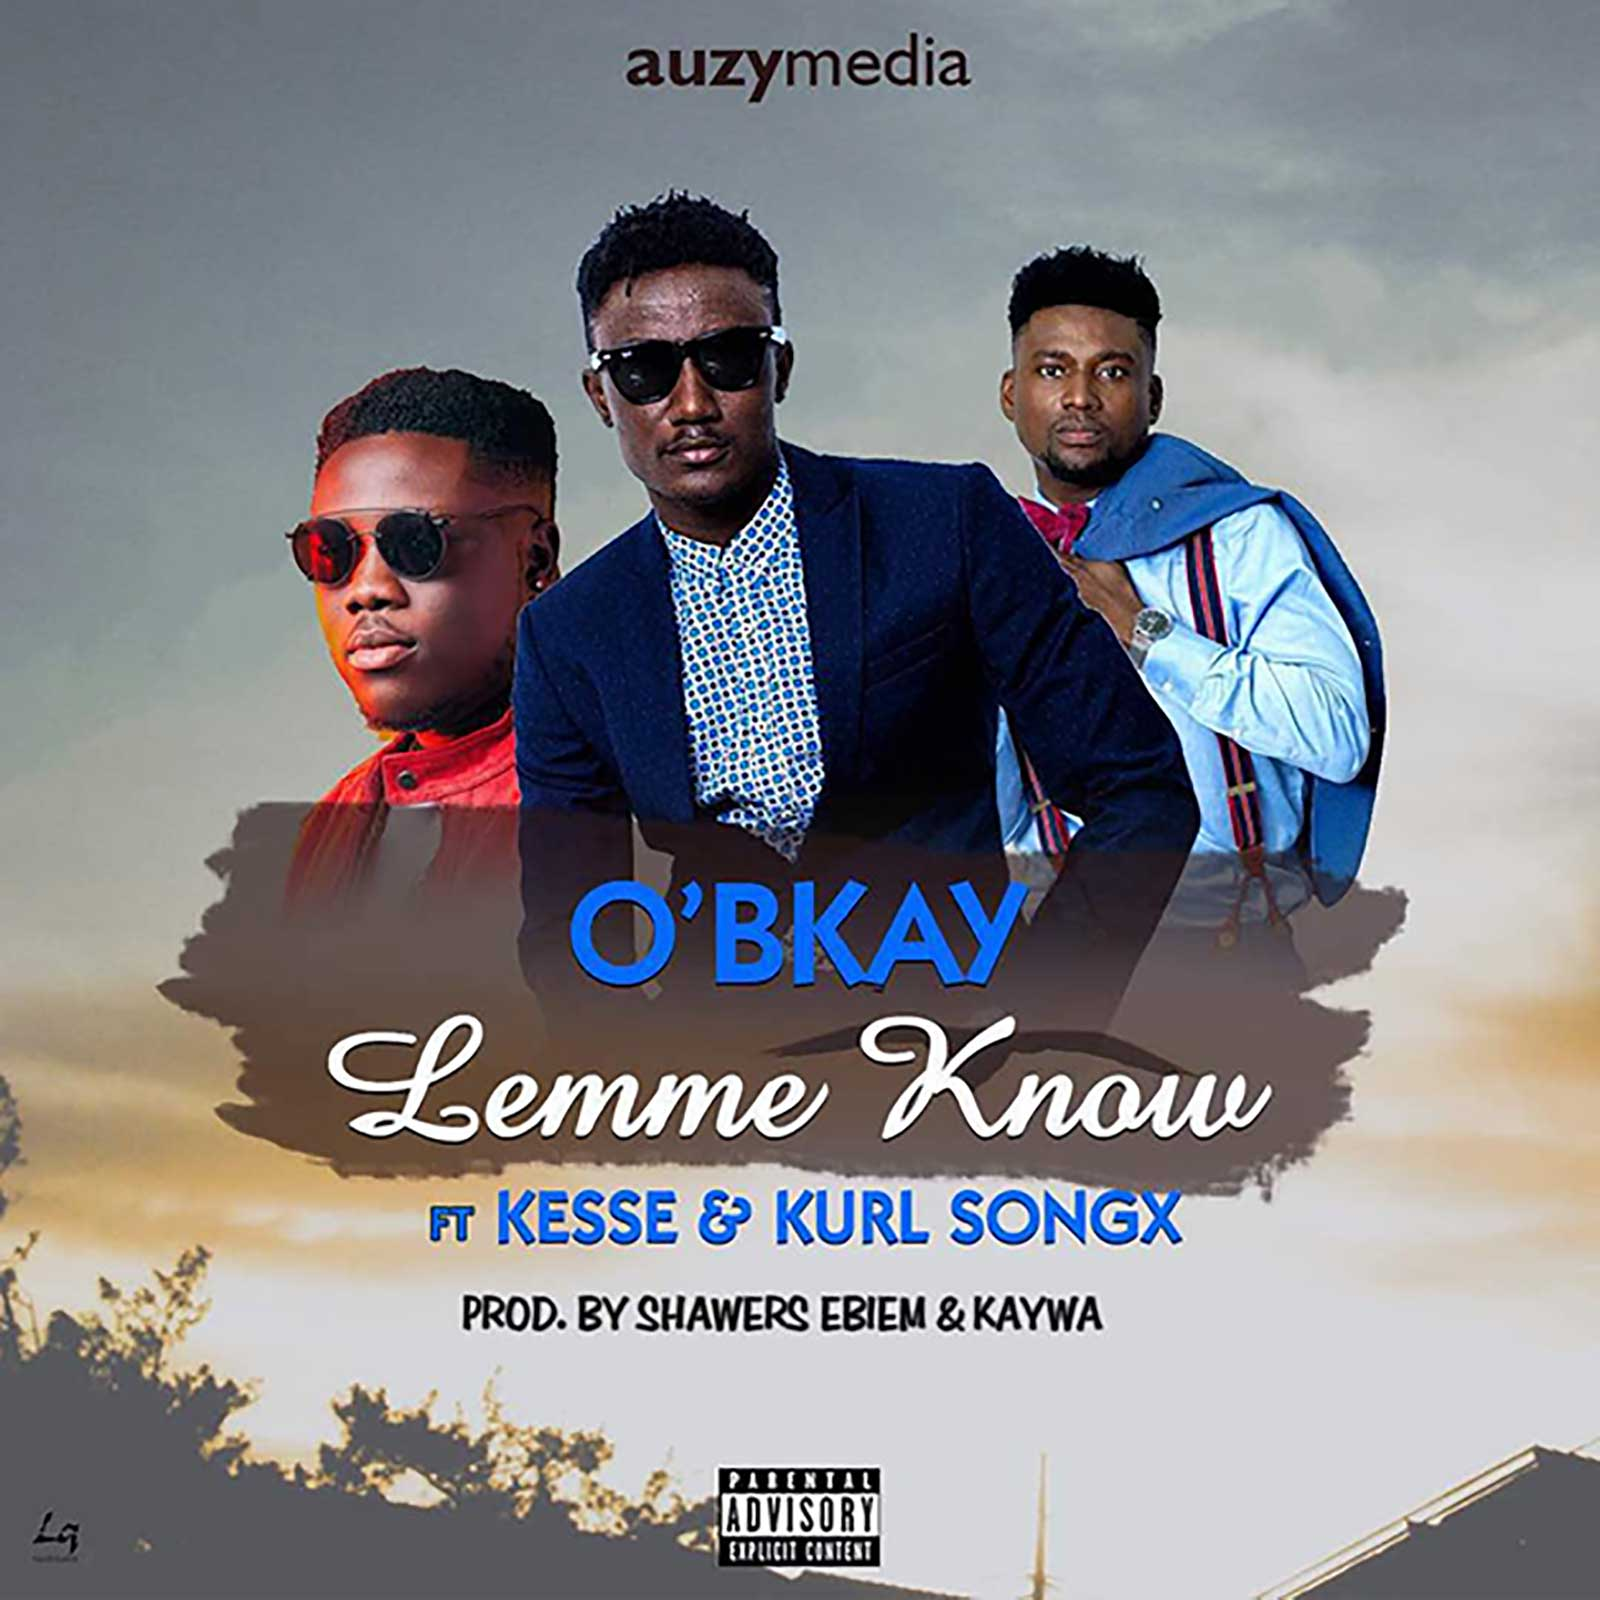 Lemme Know by O'Bkay feat. Kesse & Kurl Songx